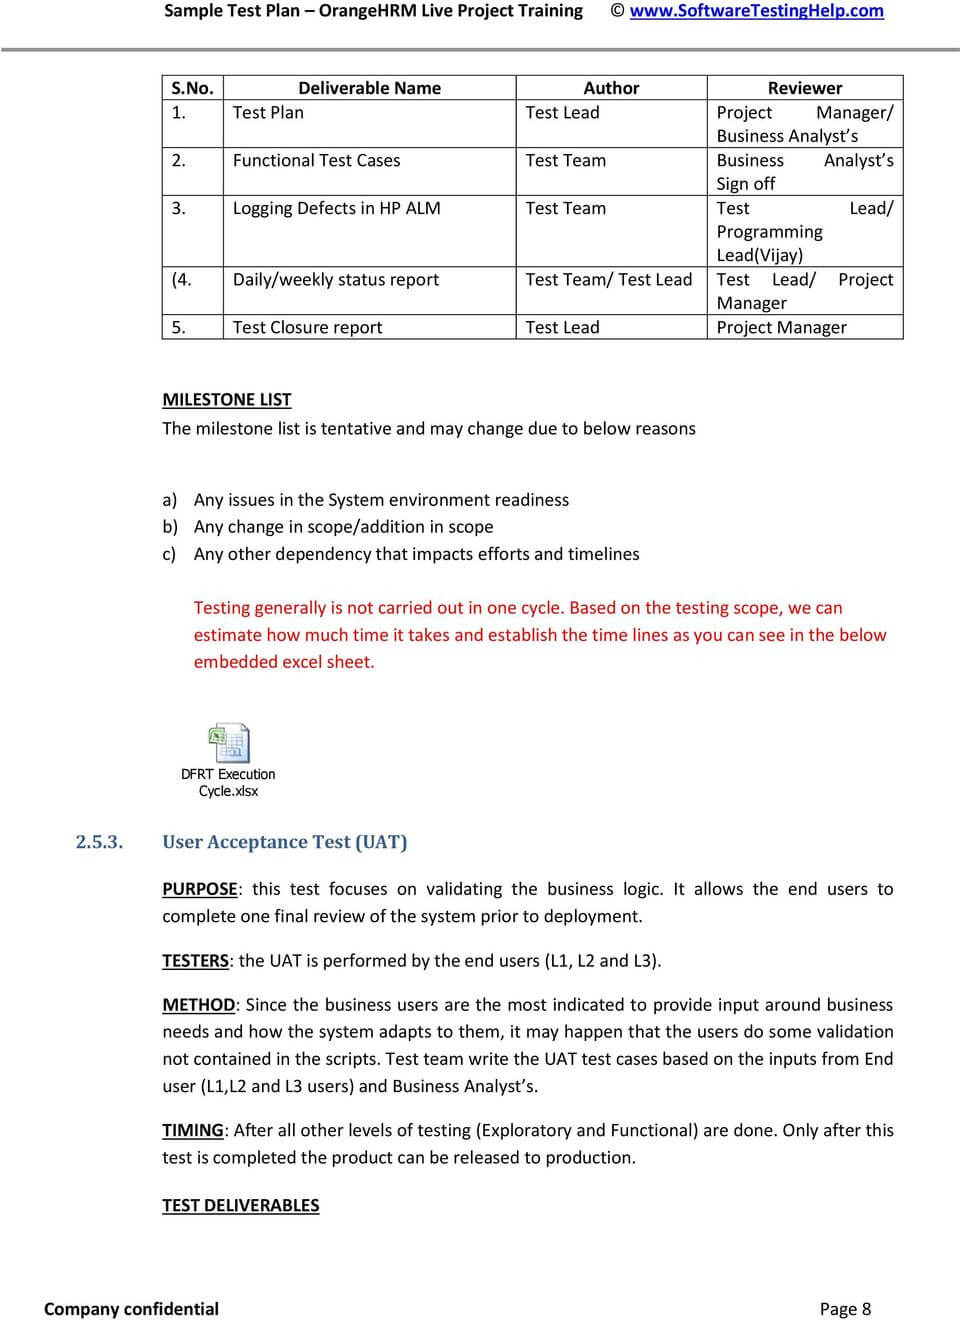 Test Closure Report Template ] - An Effective Test Summary For Test Exit Report Template